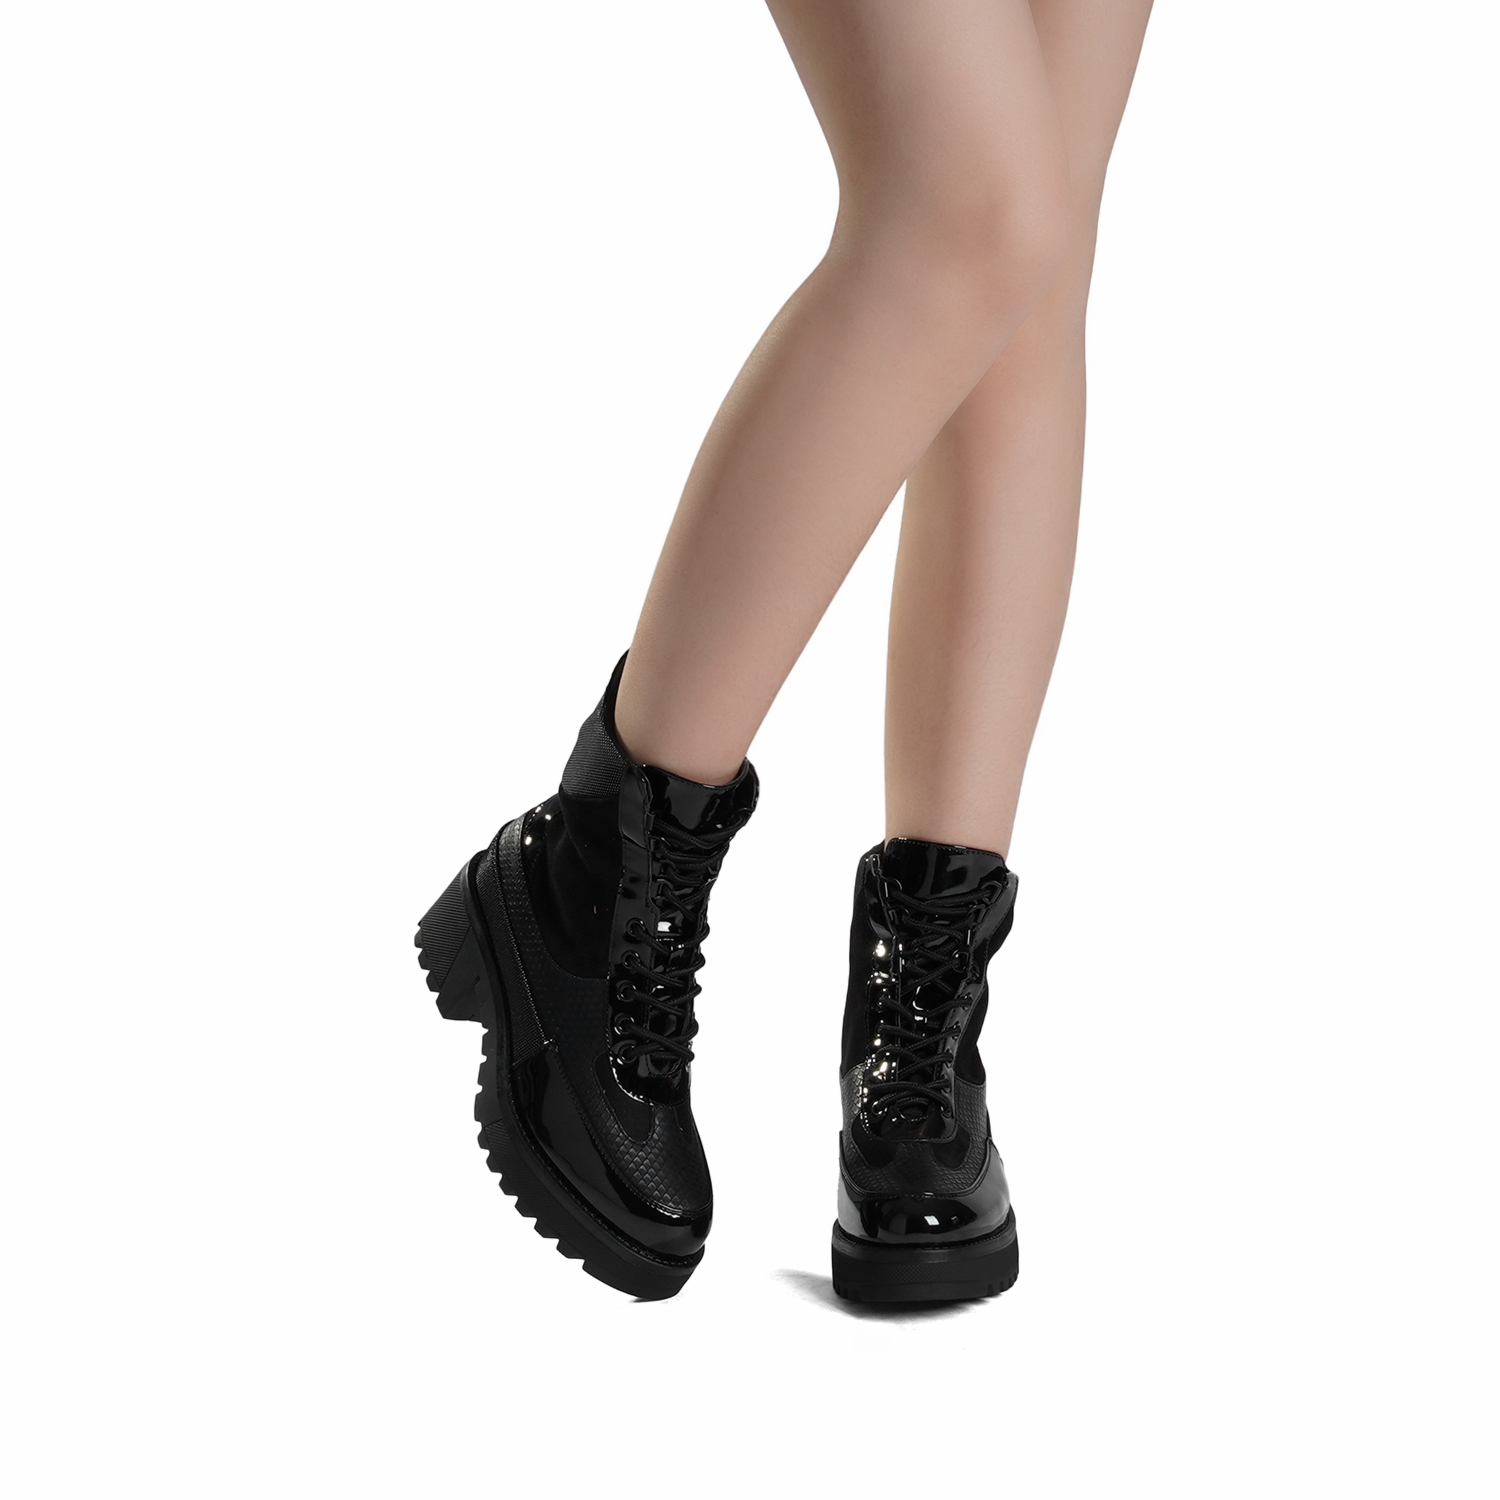 DREAM-PAIRS-Women-Lace-Up-Ankle-Boots-Platform-Chunky-Heel-Martin-Combat-Boots thumbnail 6